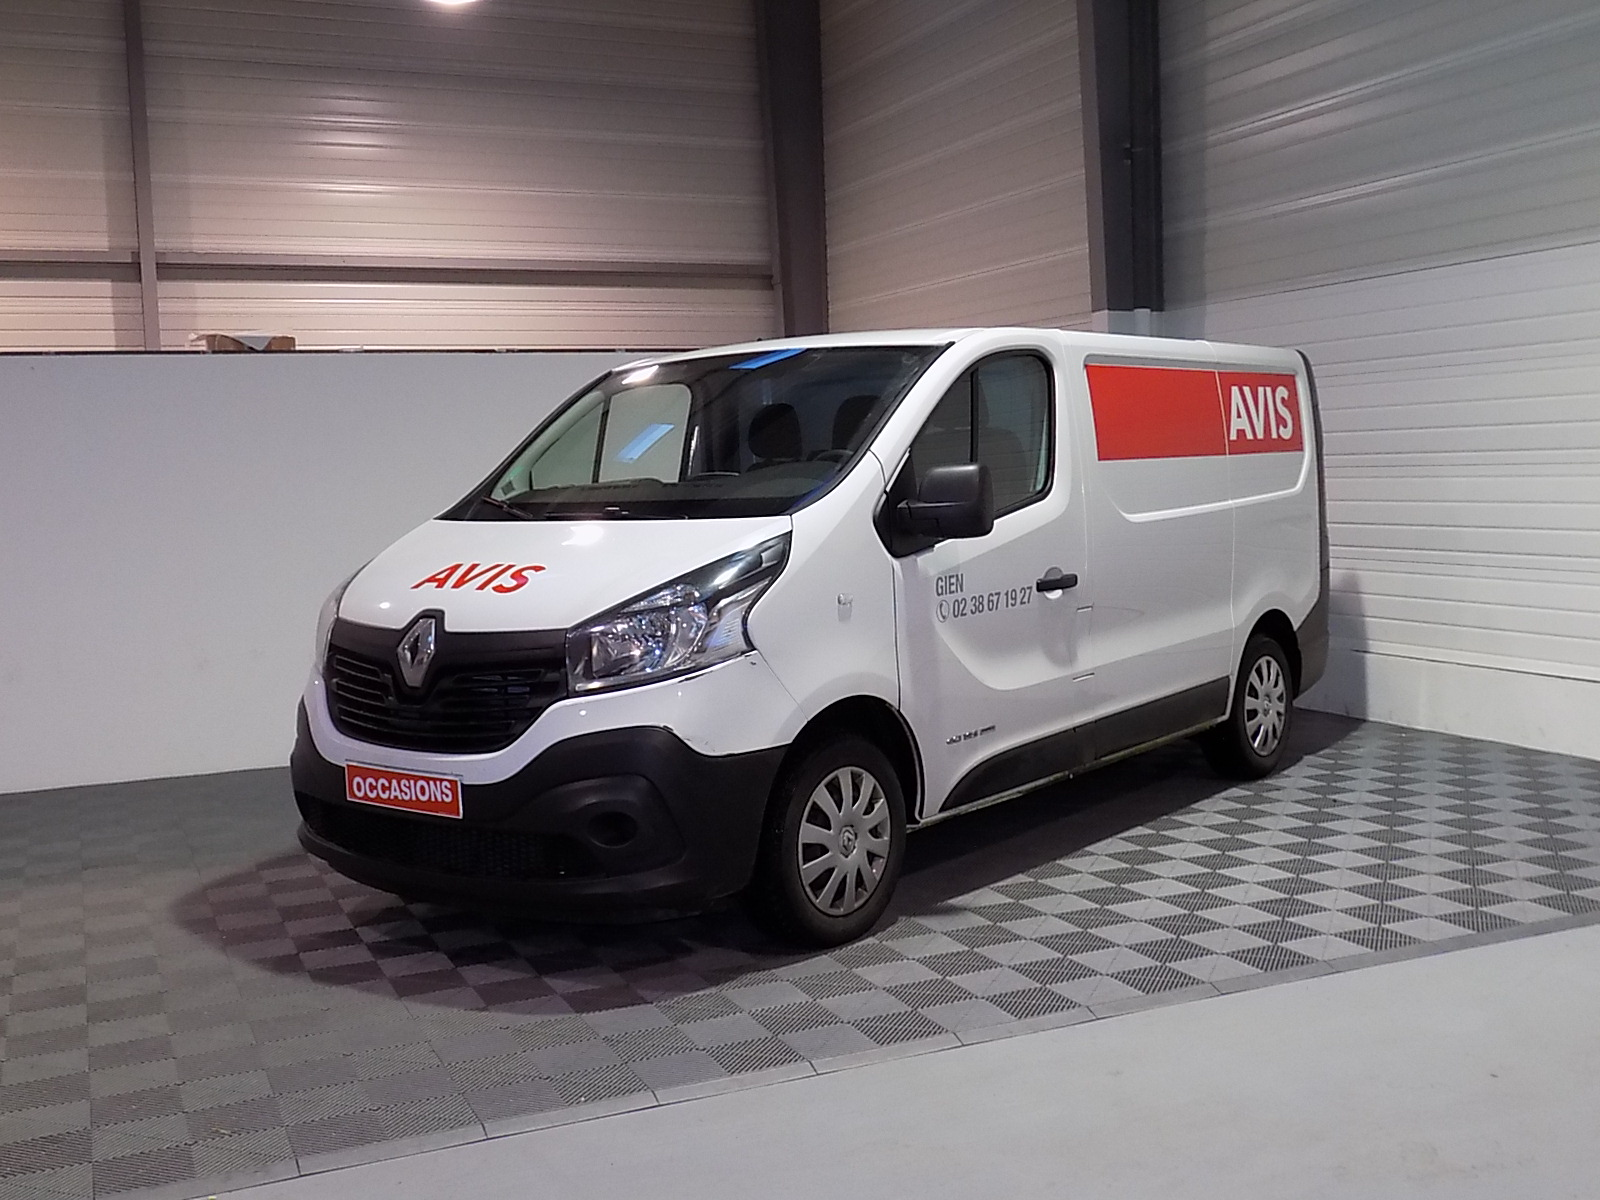 RENAULT TRAFIC FOURGON FGN L1H1 1000 KG DCI 125 ENERGY E6 GRAND CONFORT d'occasion